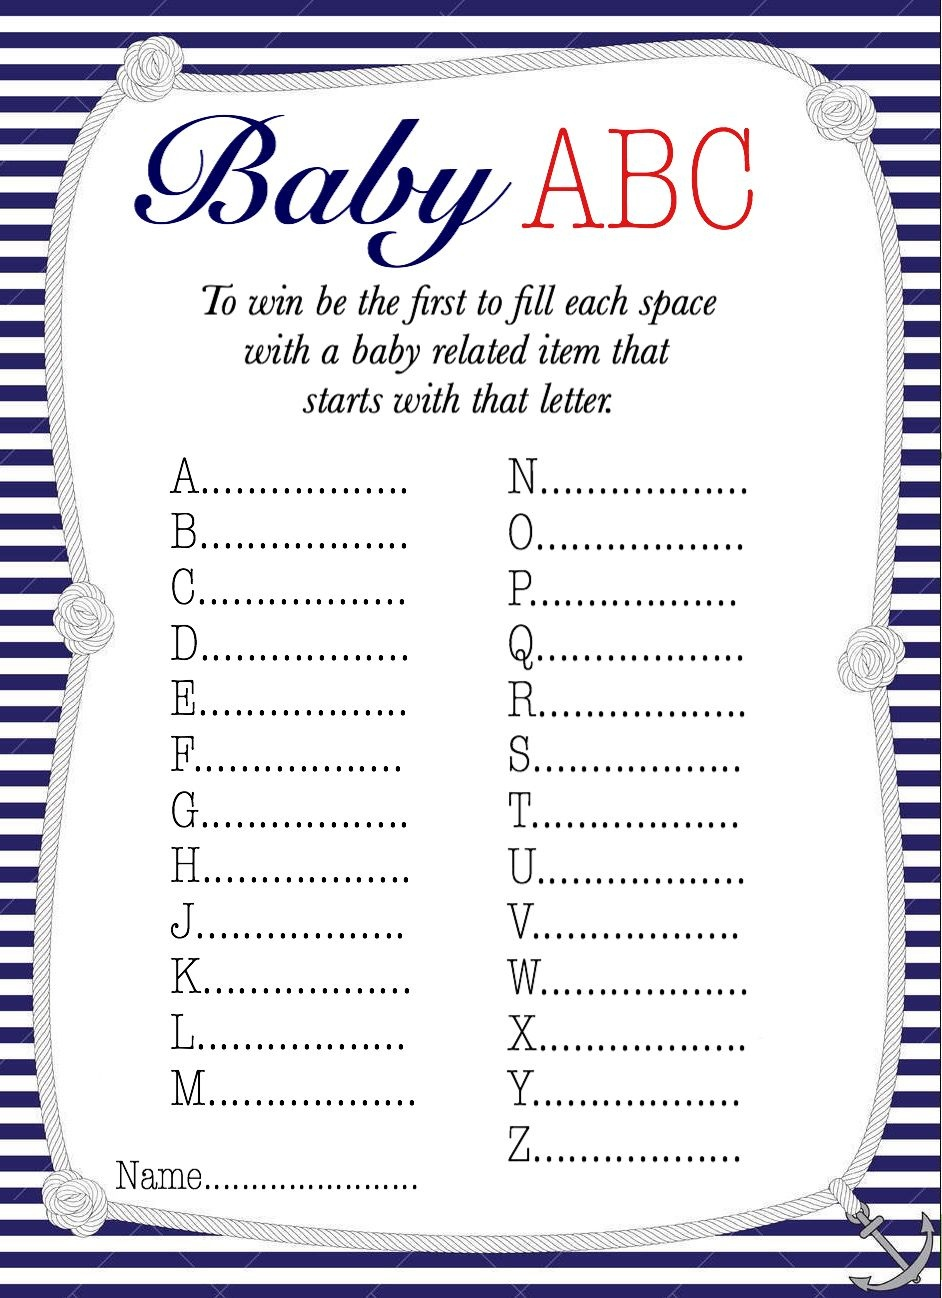 50+ Free Baby Shower Printables For A Perfect Party - Page 21 - Find The Guest Baby Shower Game Free Printable